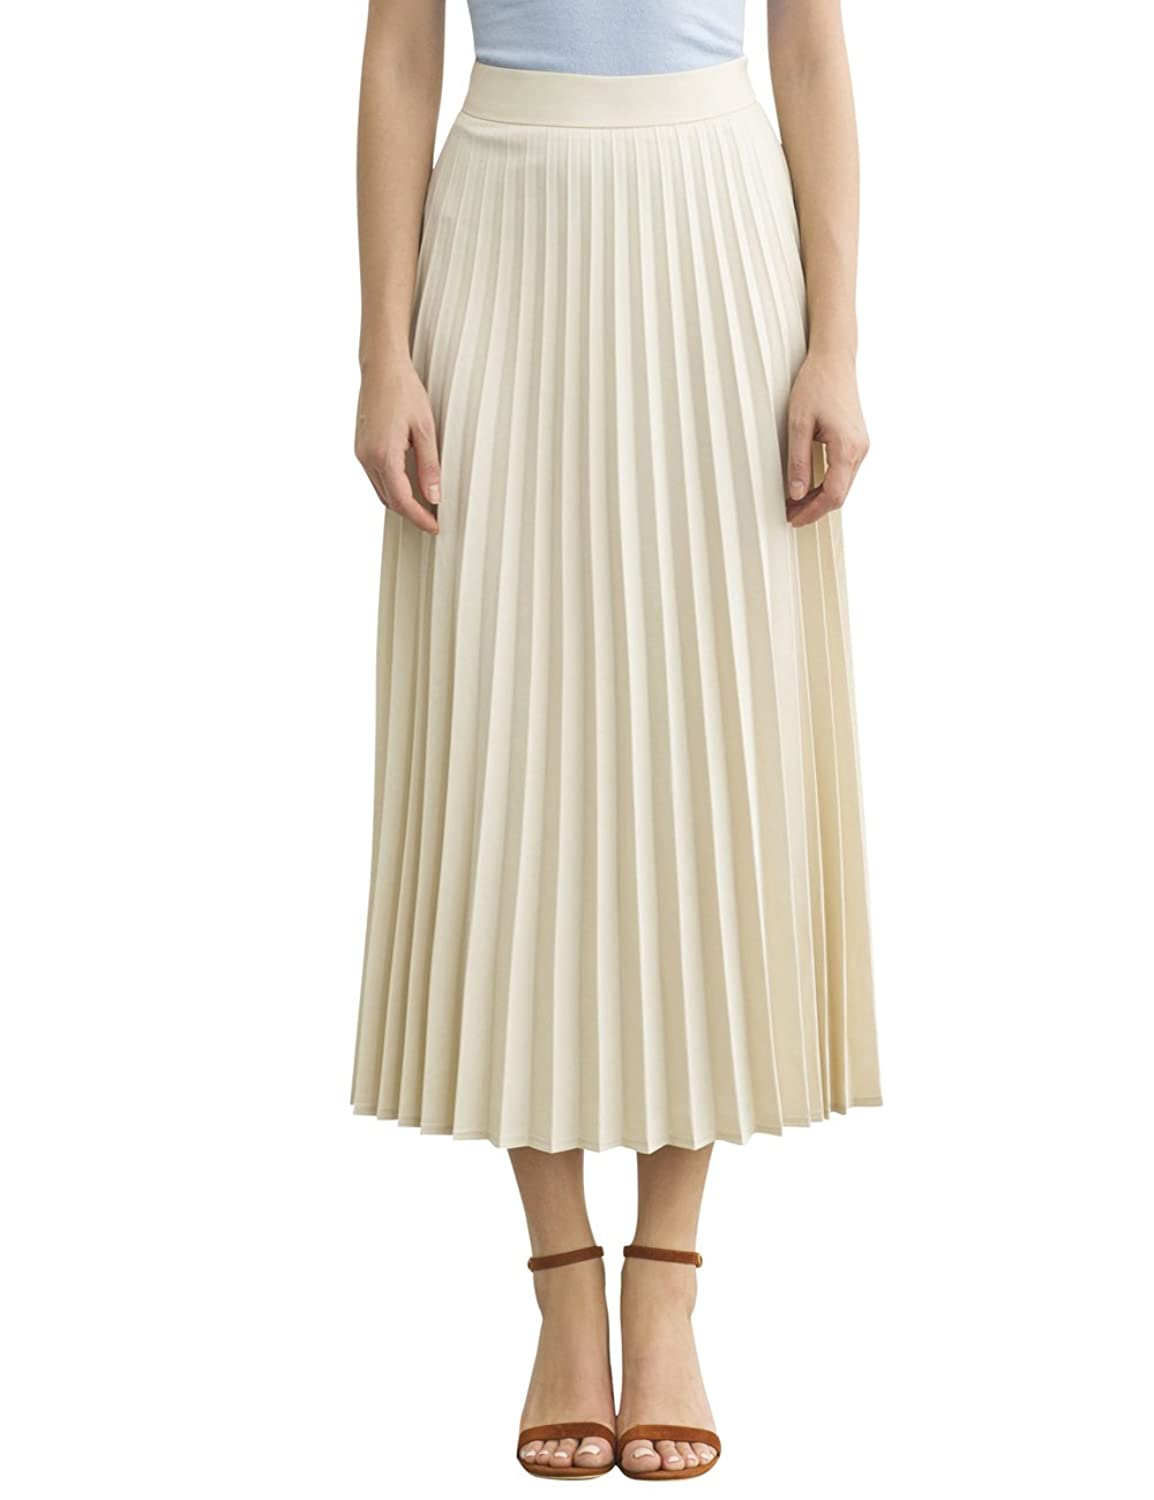 1940s Style Skirts- High Waist Vintage Skirts Simple Retro Womens High Waist Basic Pleated A-line Midi Skirt $24.99 AT vintagedancer.com